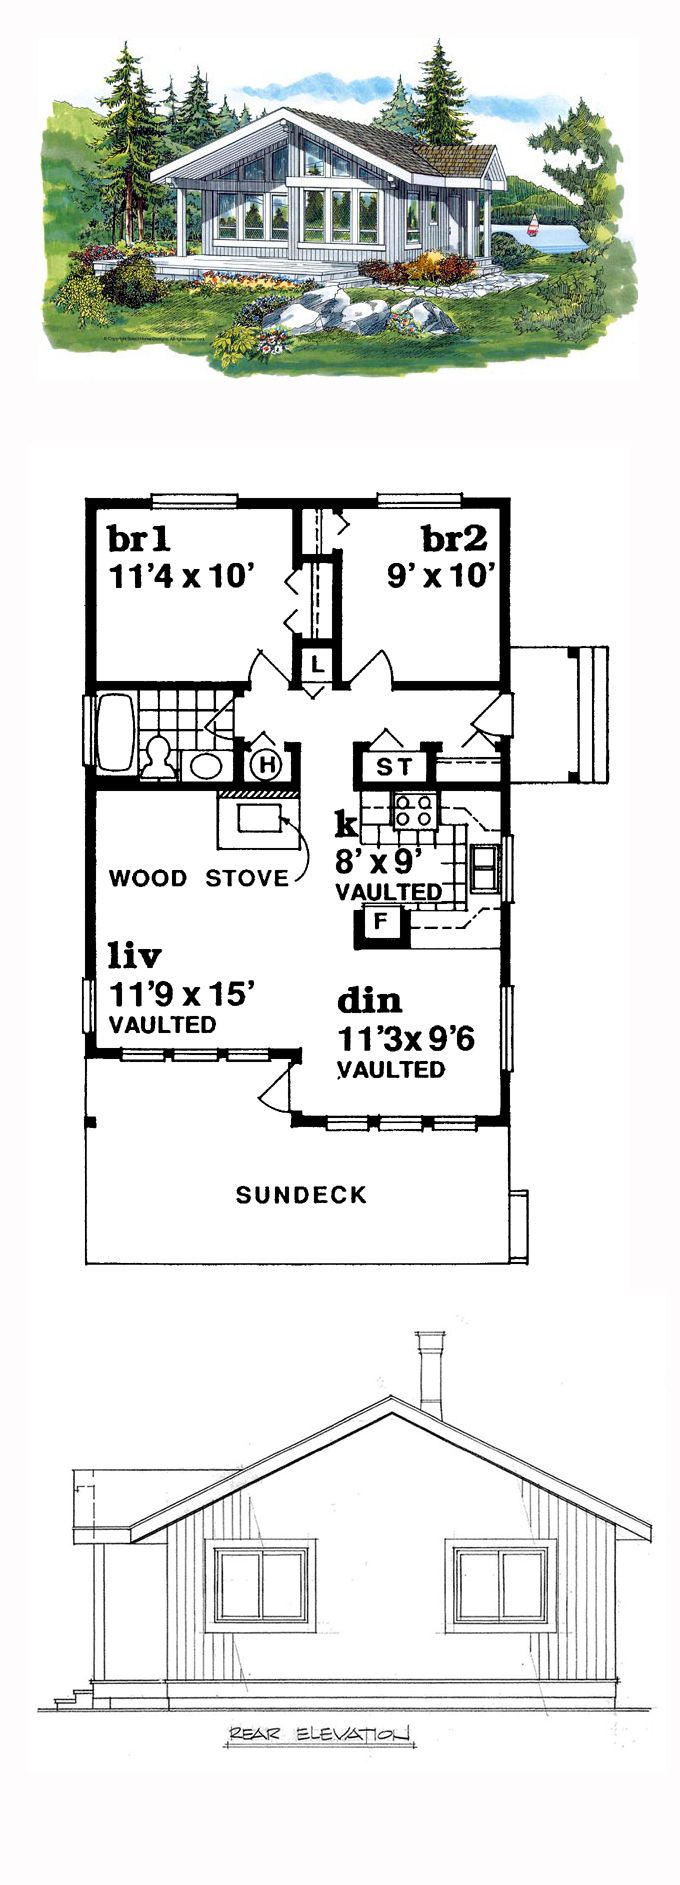 best 25 contemporary house plans ideas on pinterest modern best 25 contemporary house plans ideas on pinterest modern houses modern floor plans and modern house plans